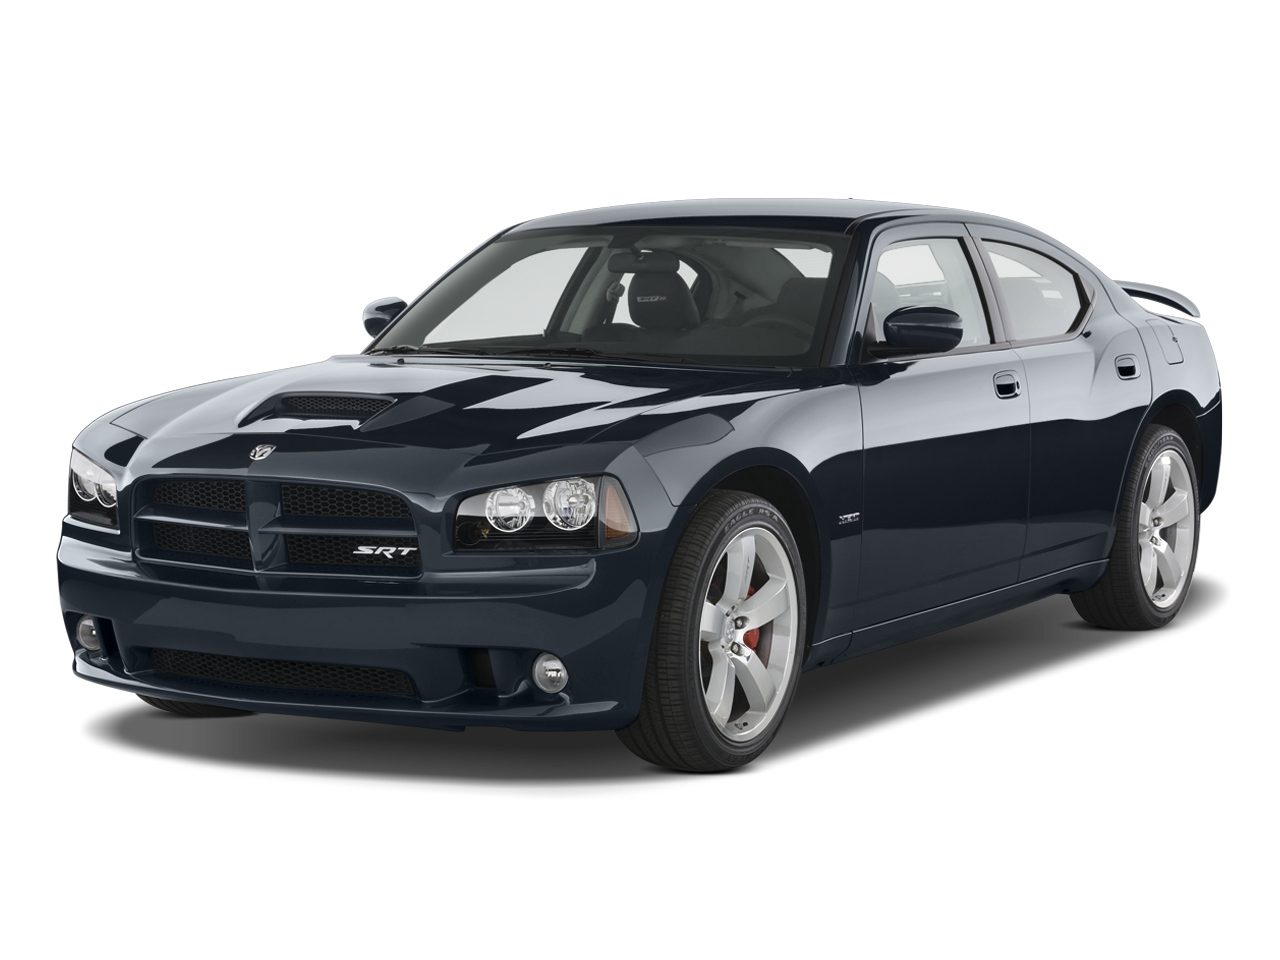 2010 Dodge Charger Srt8 Dodge Sports Coupe Review